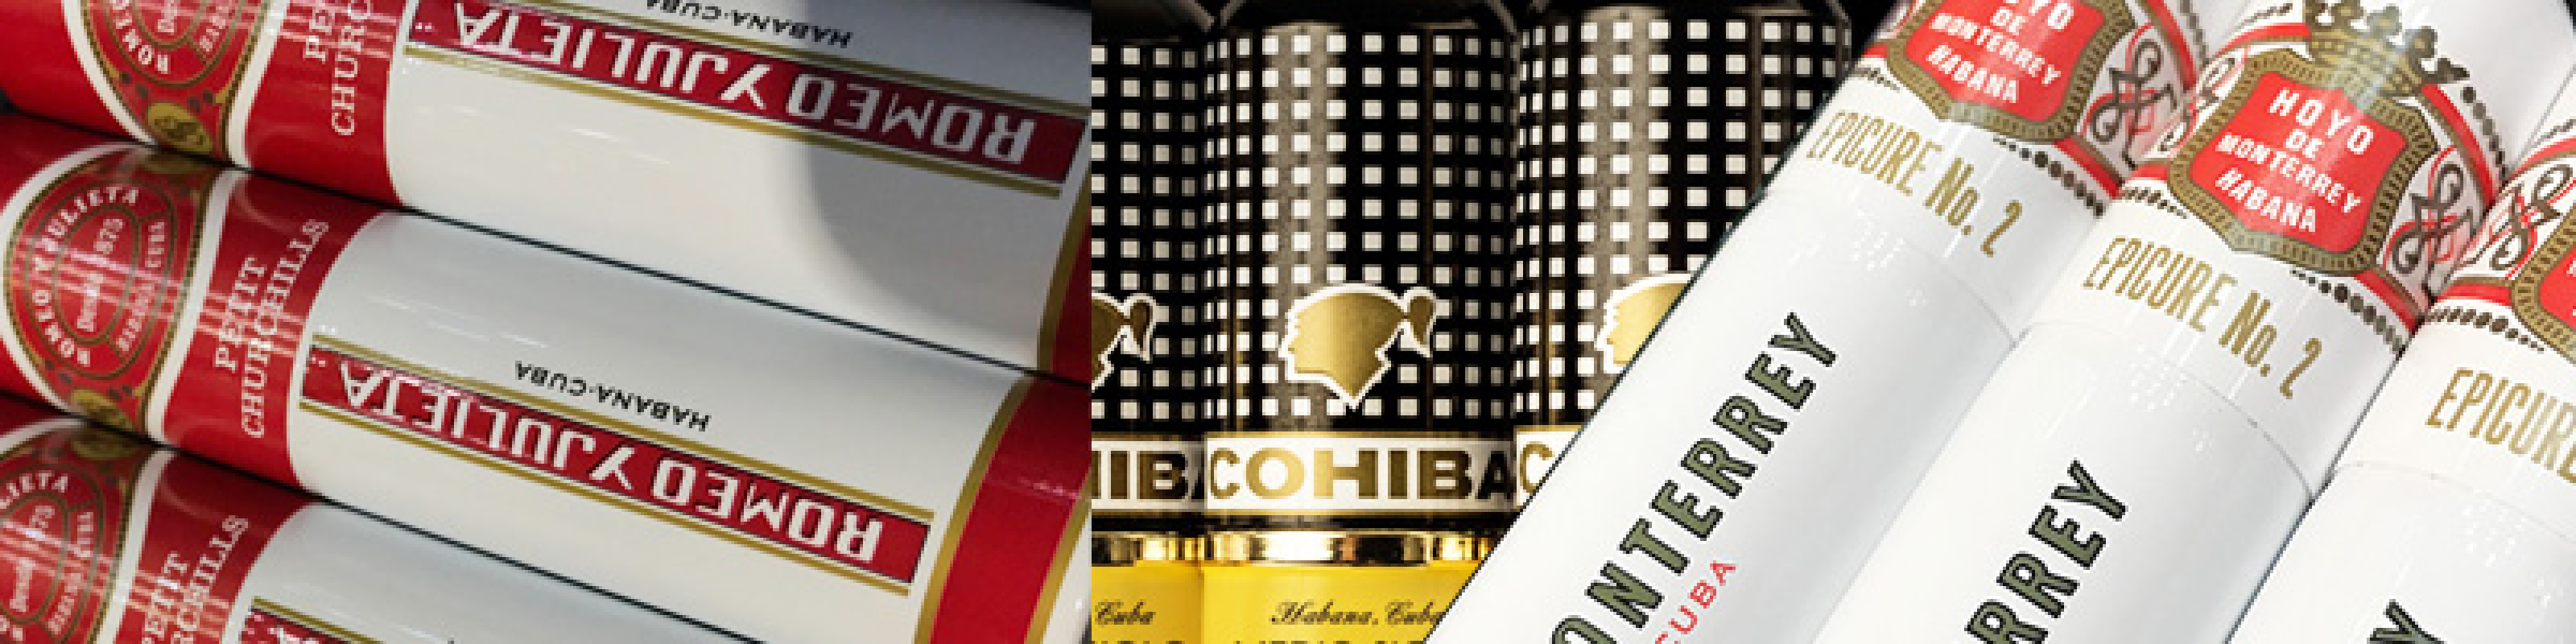 Case of 3 cigars